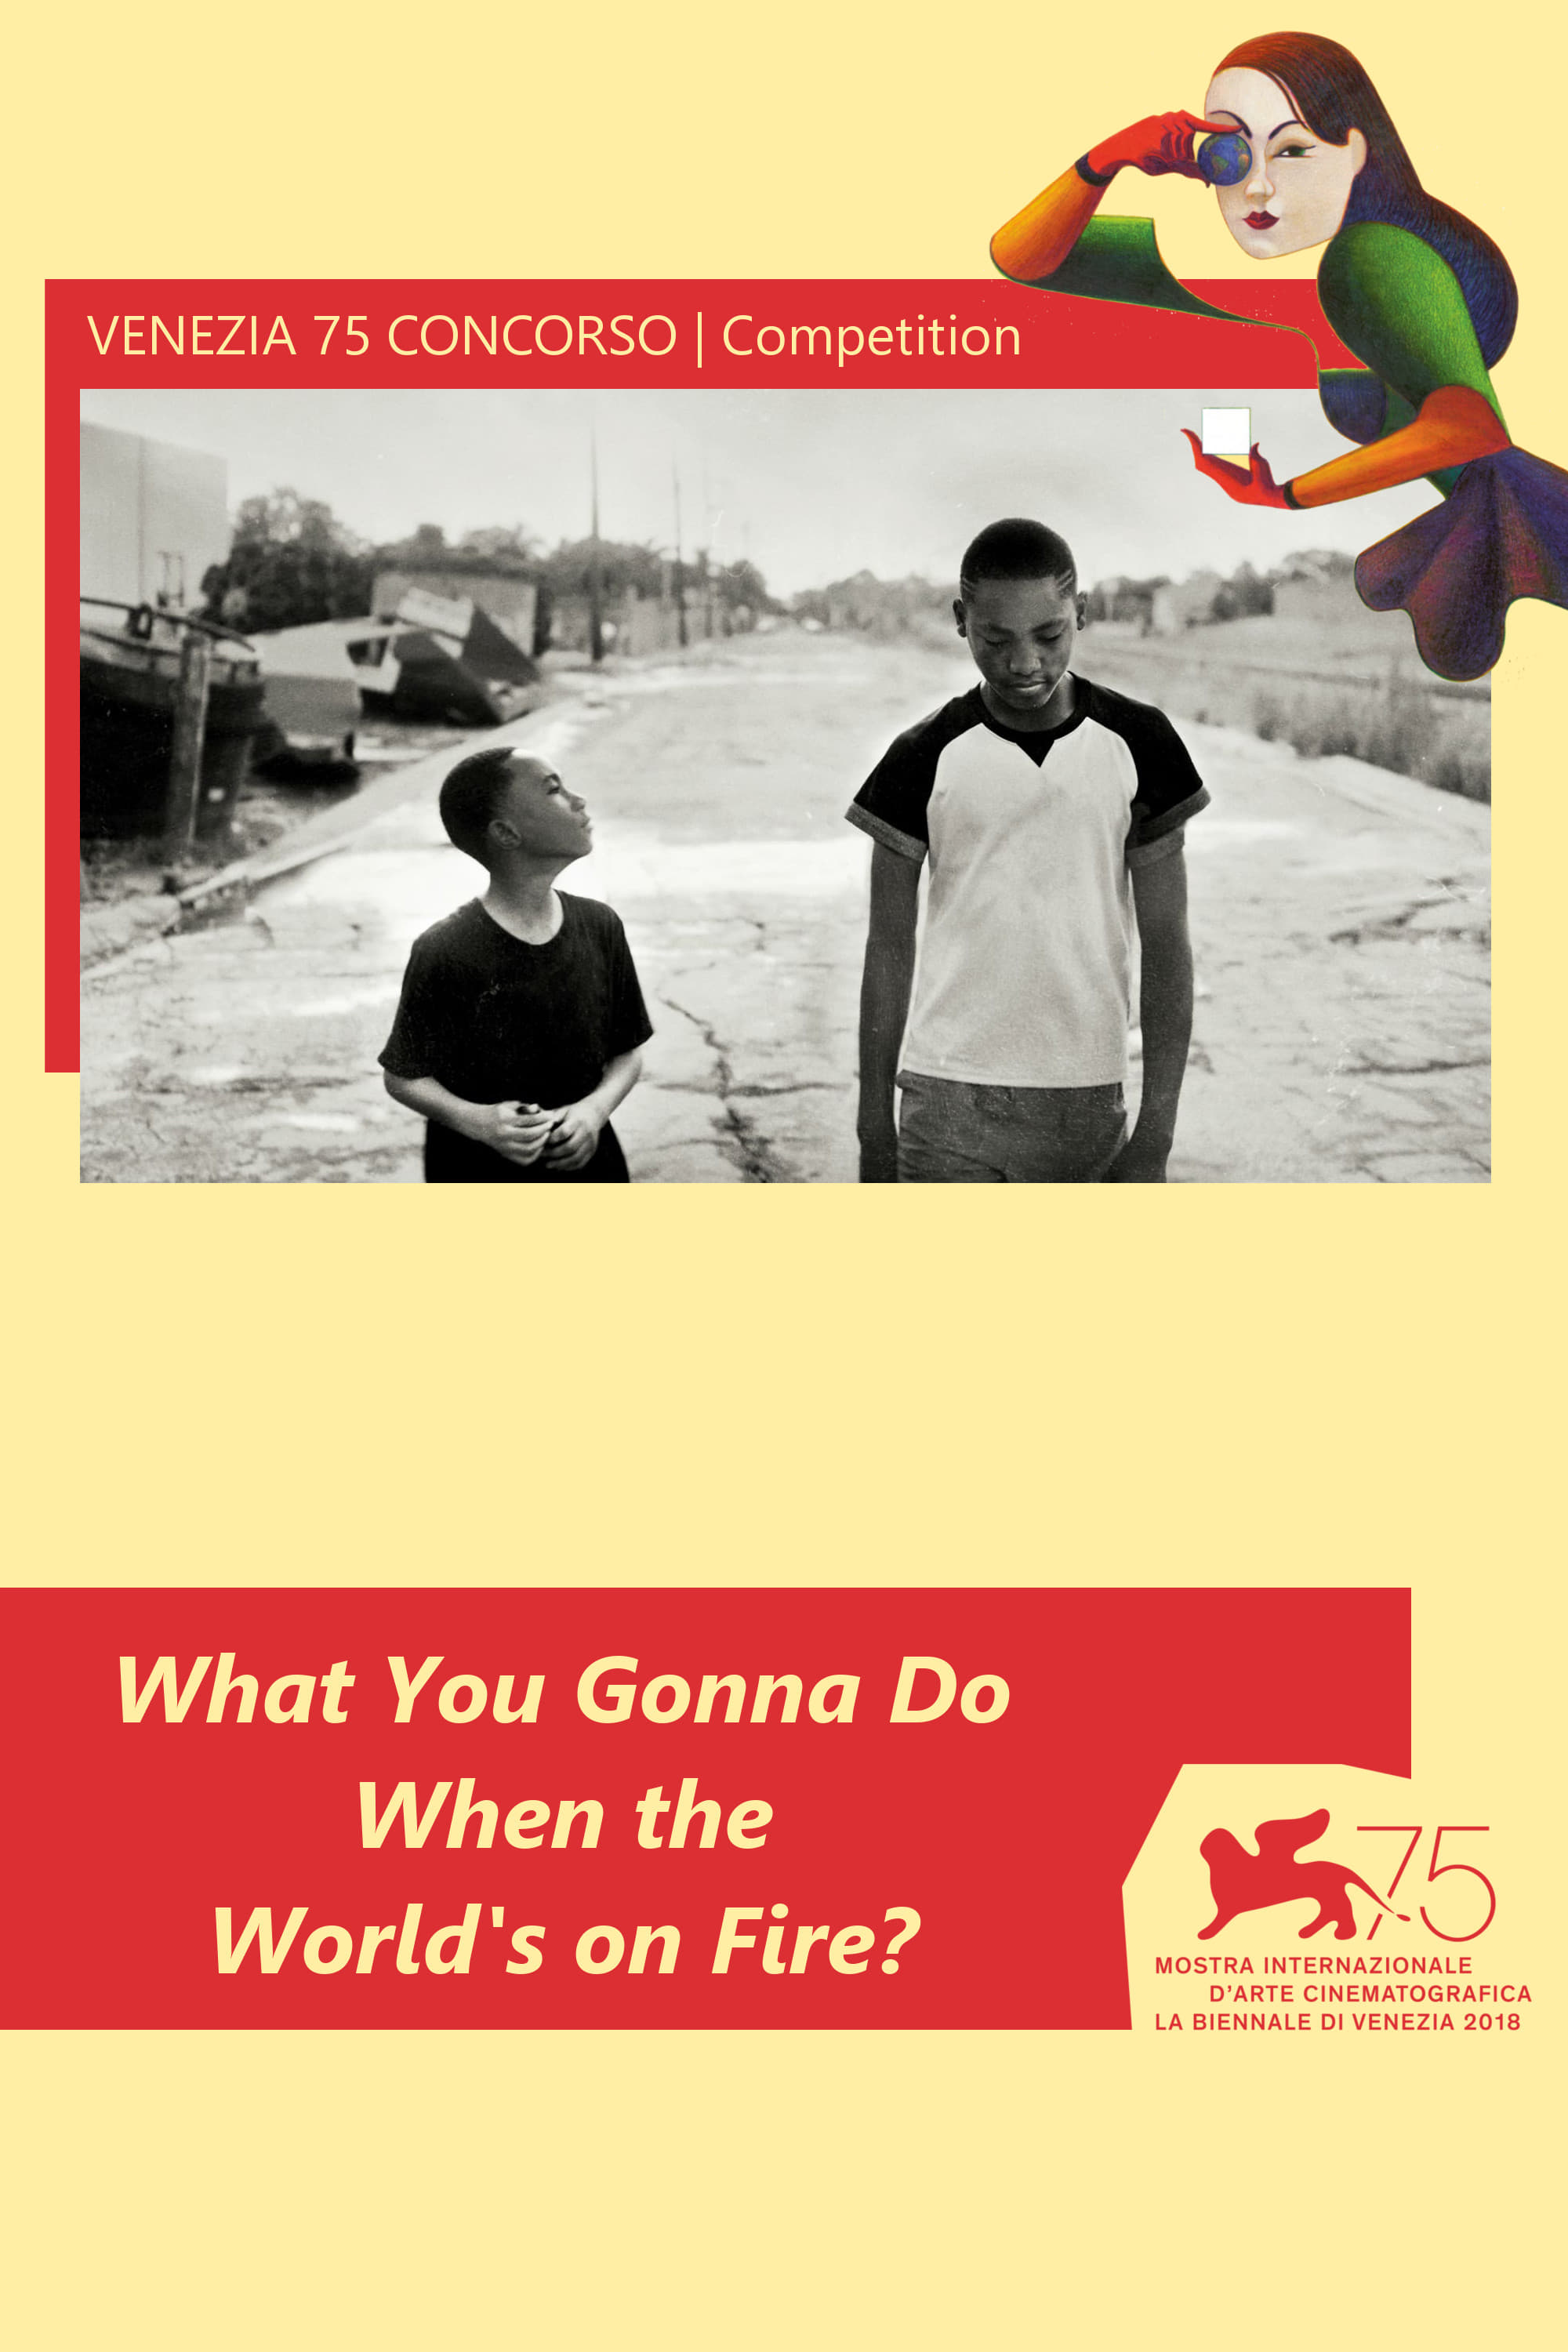 Poster and image movie Film What You Gonna Do When the World's on Fire? - What You Gonna Do When the World's on Fire? 2018